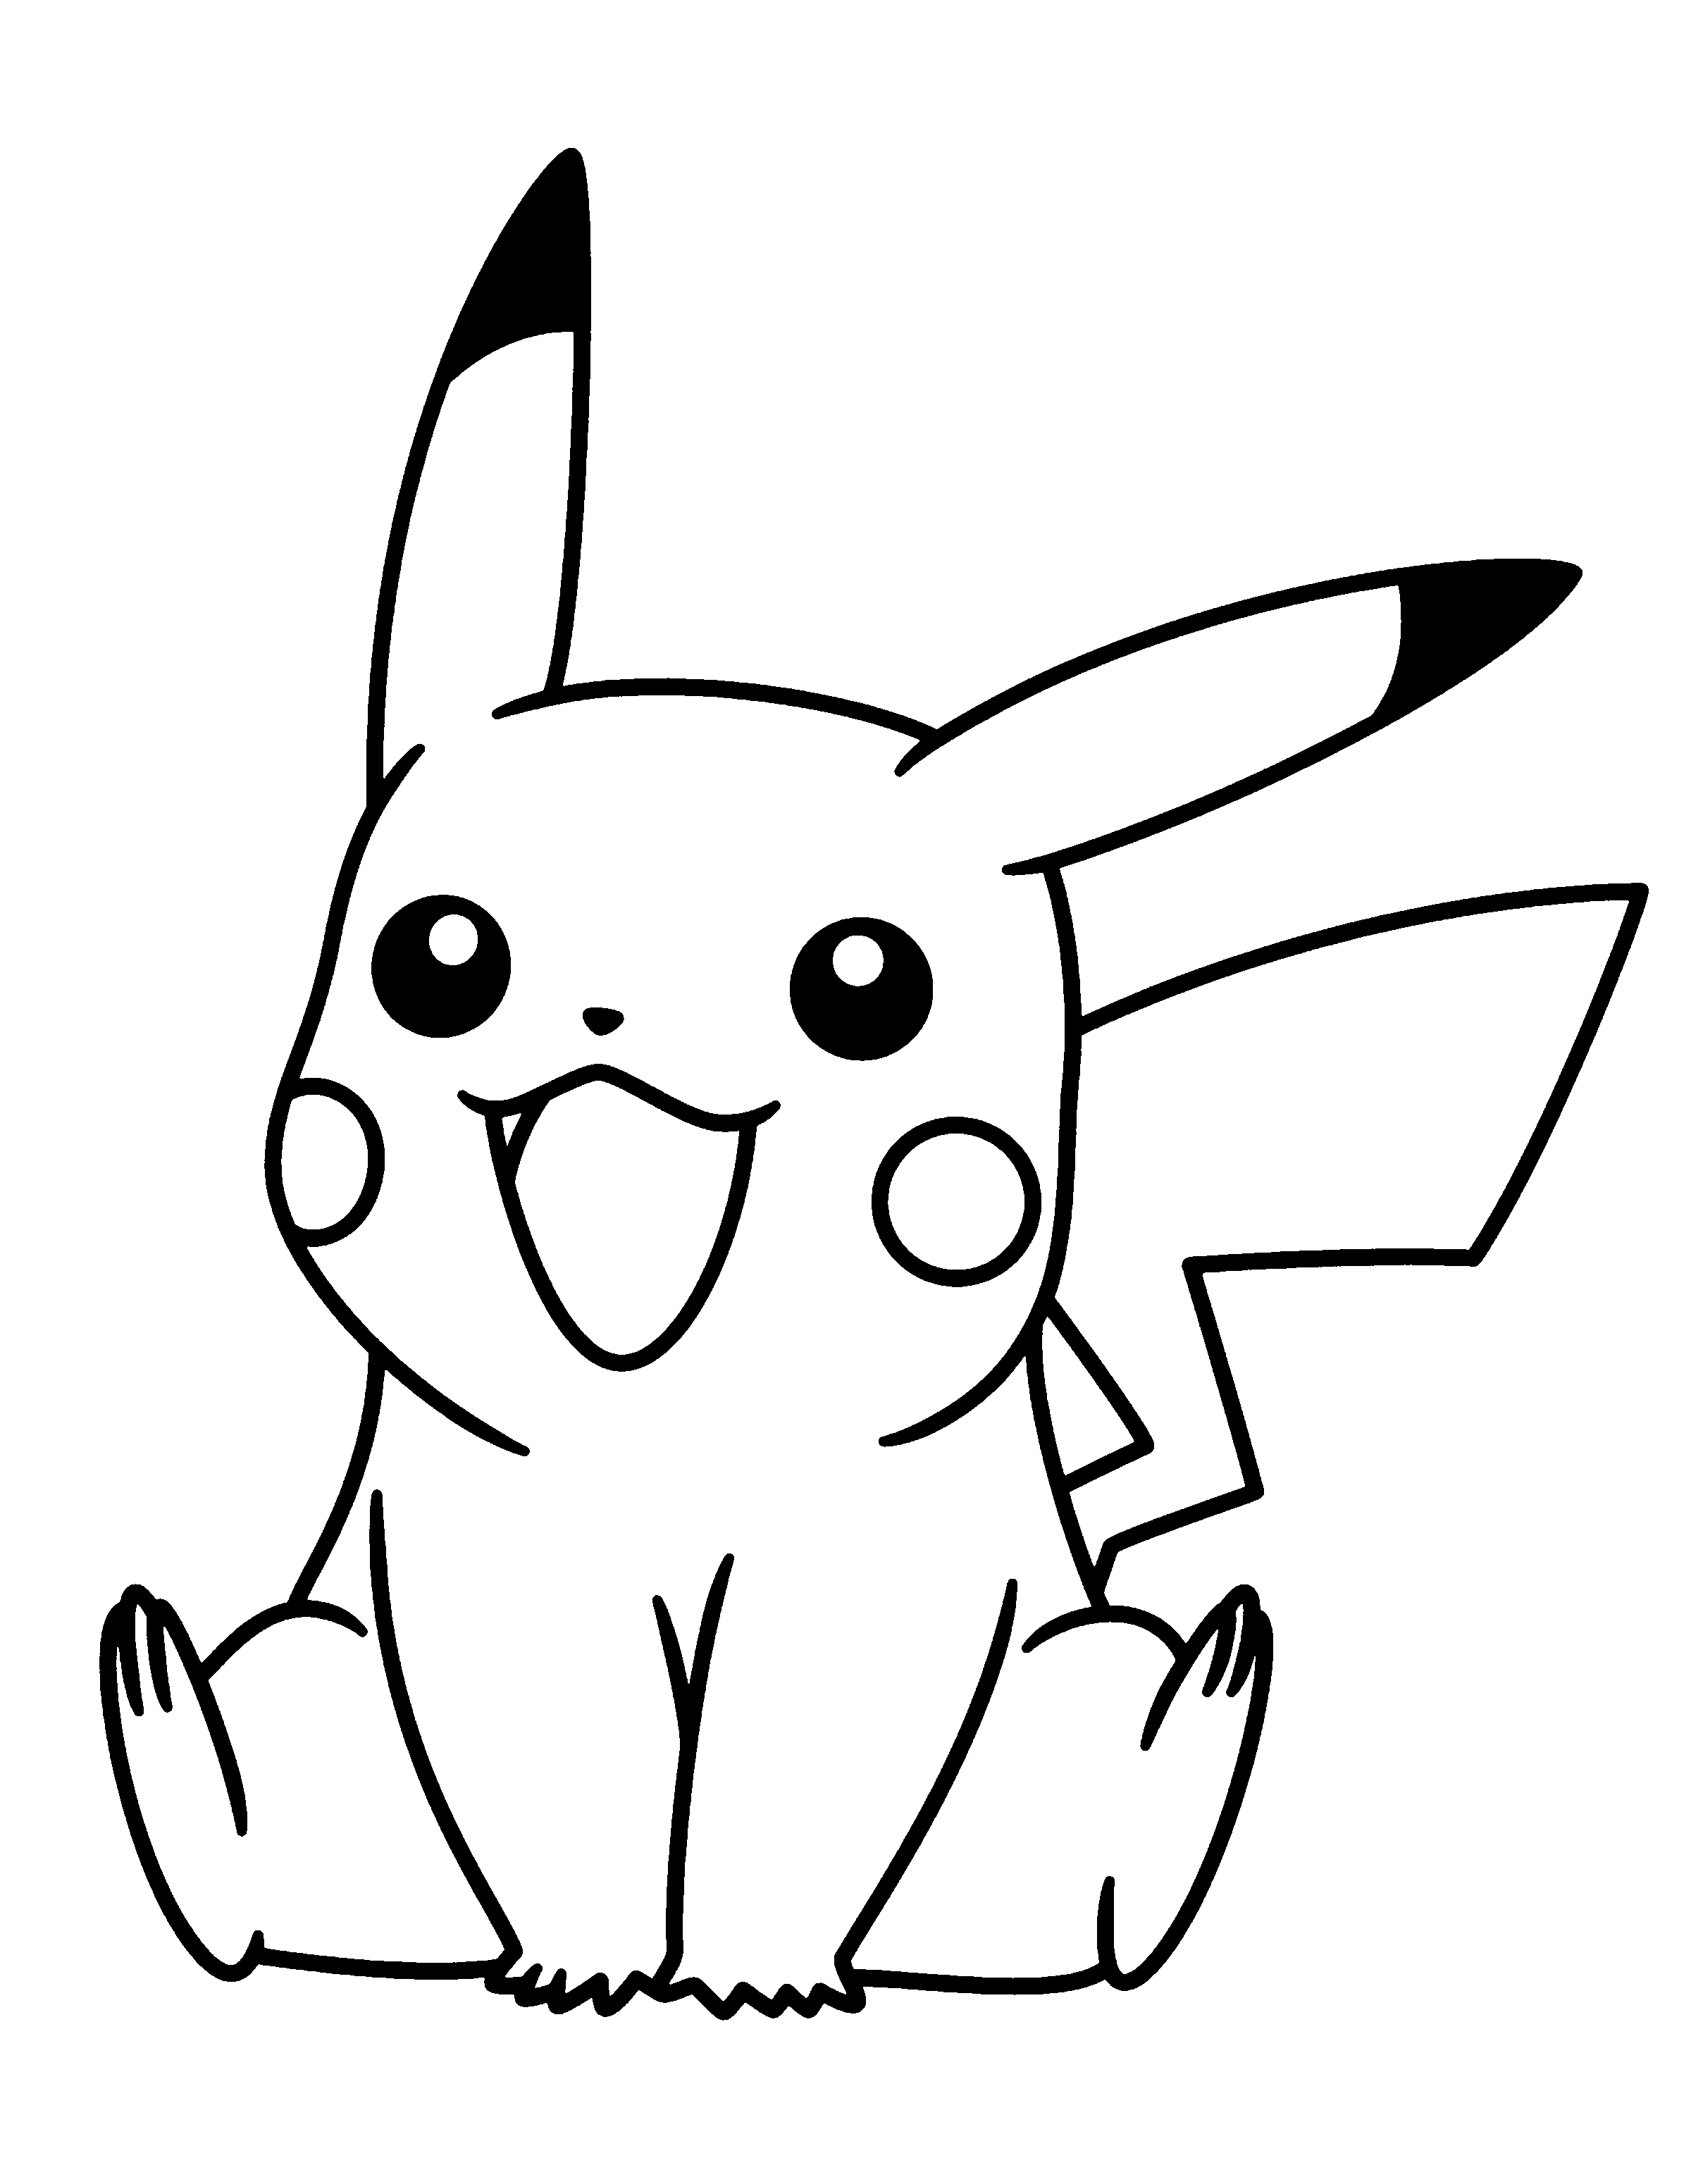 coloring pokemon black and white pokemon coloring pages xy free download on clipartmag coloring white black pokemon and